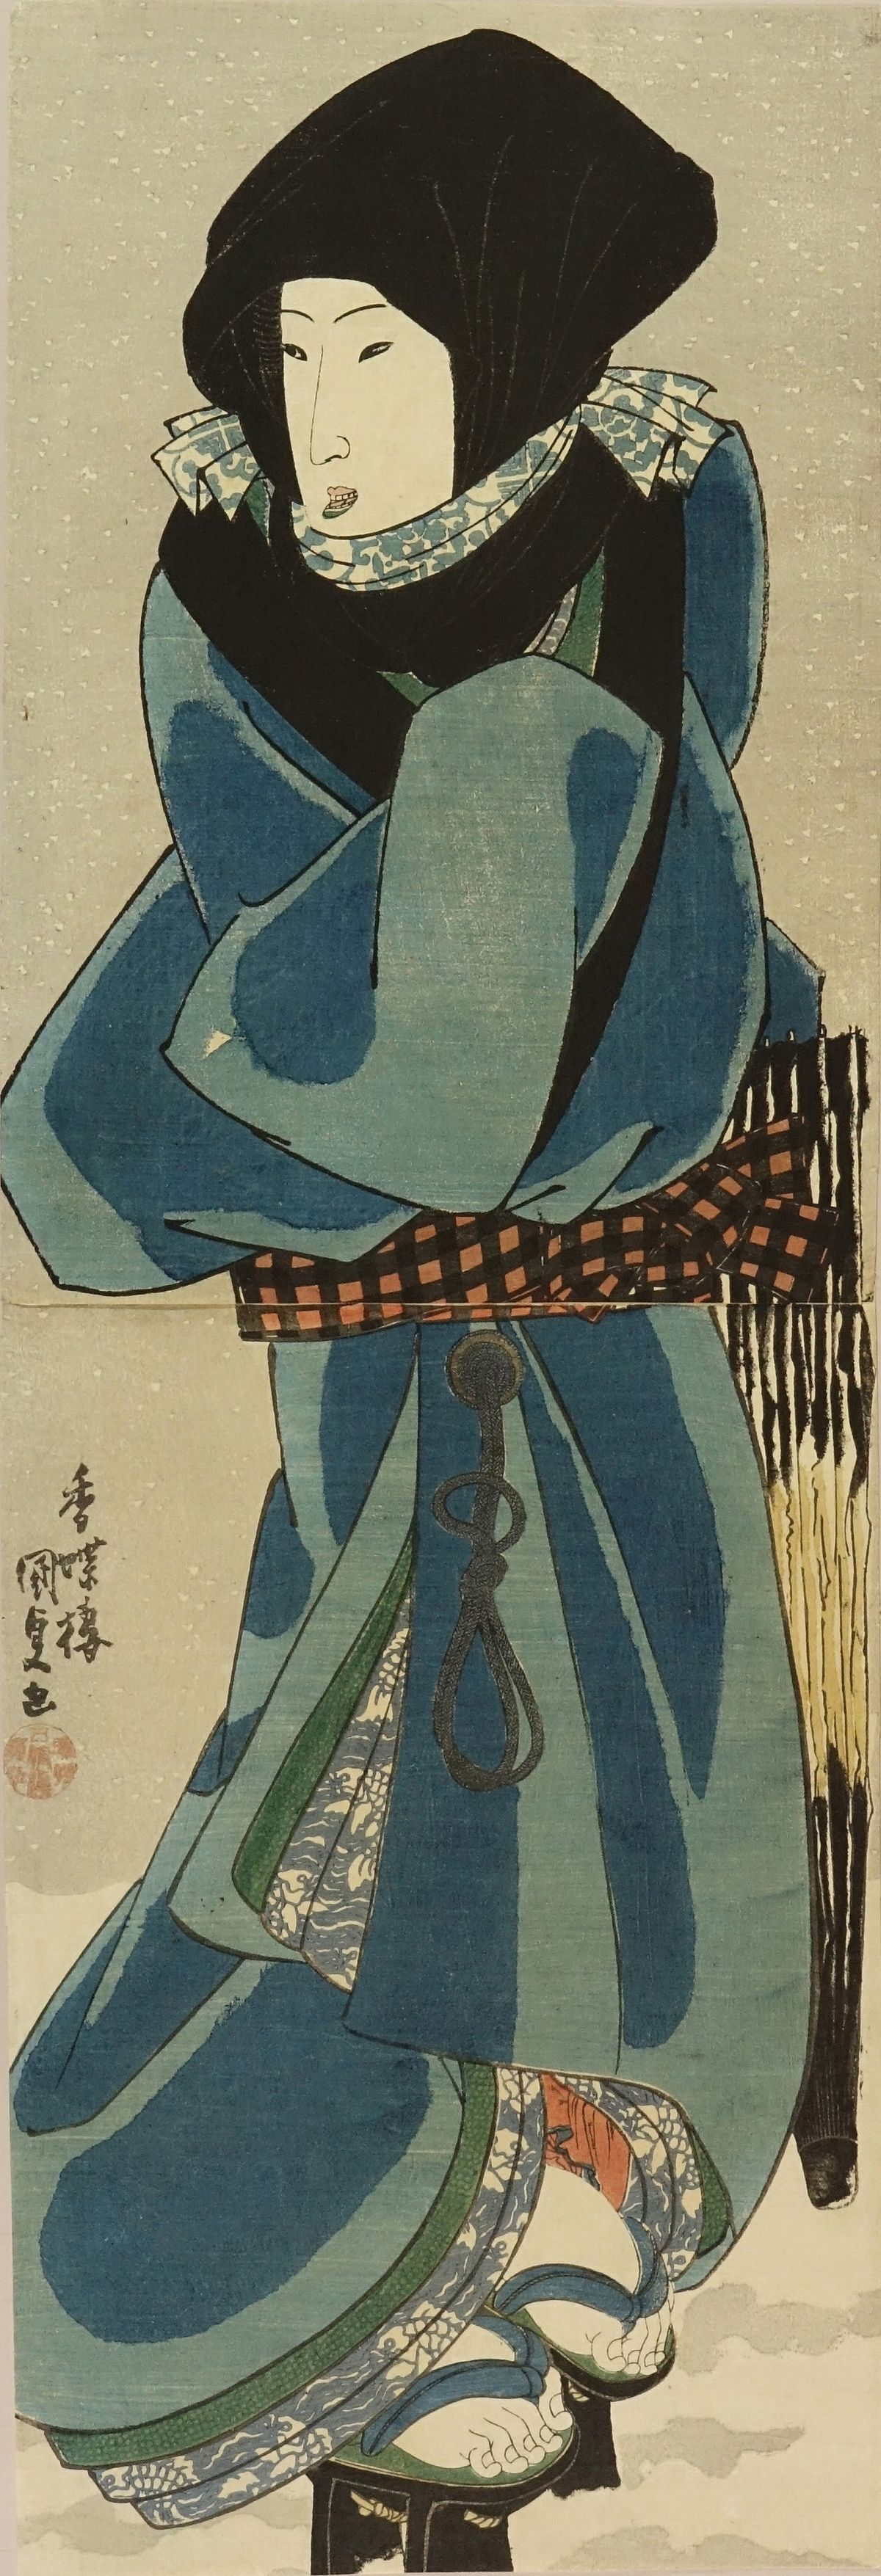 KUNISADA Standing beauty in snow covering her head with <i>okoso zukin</i> (Winter hood), vertical diptych